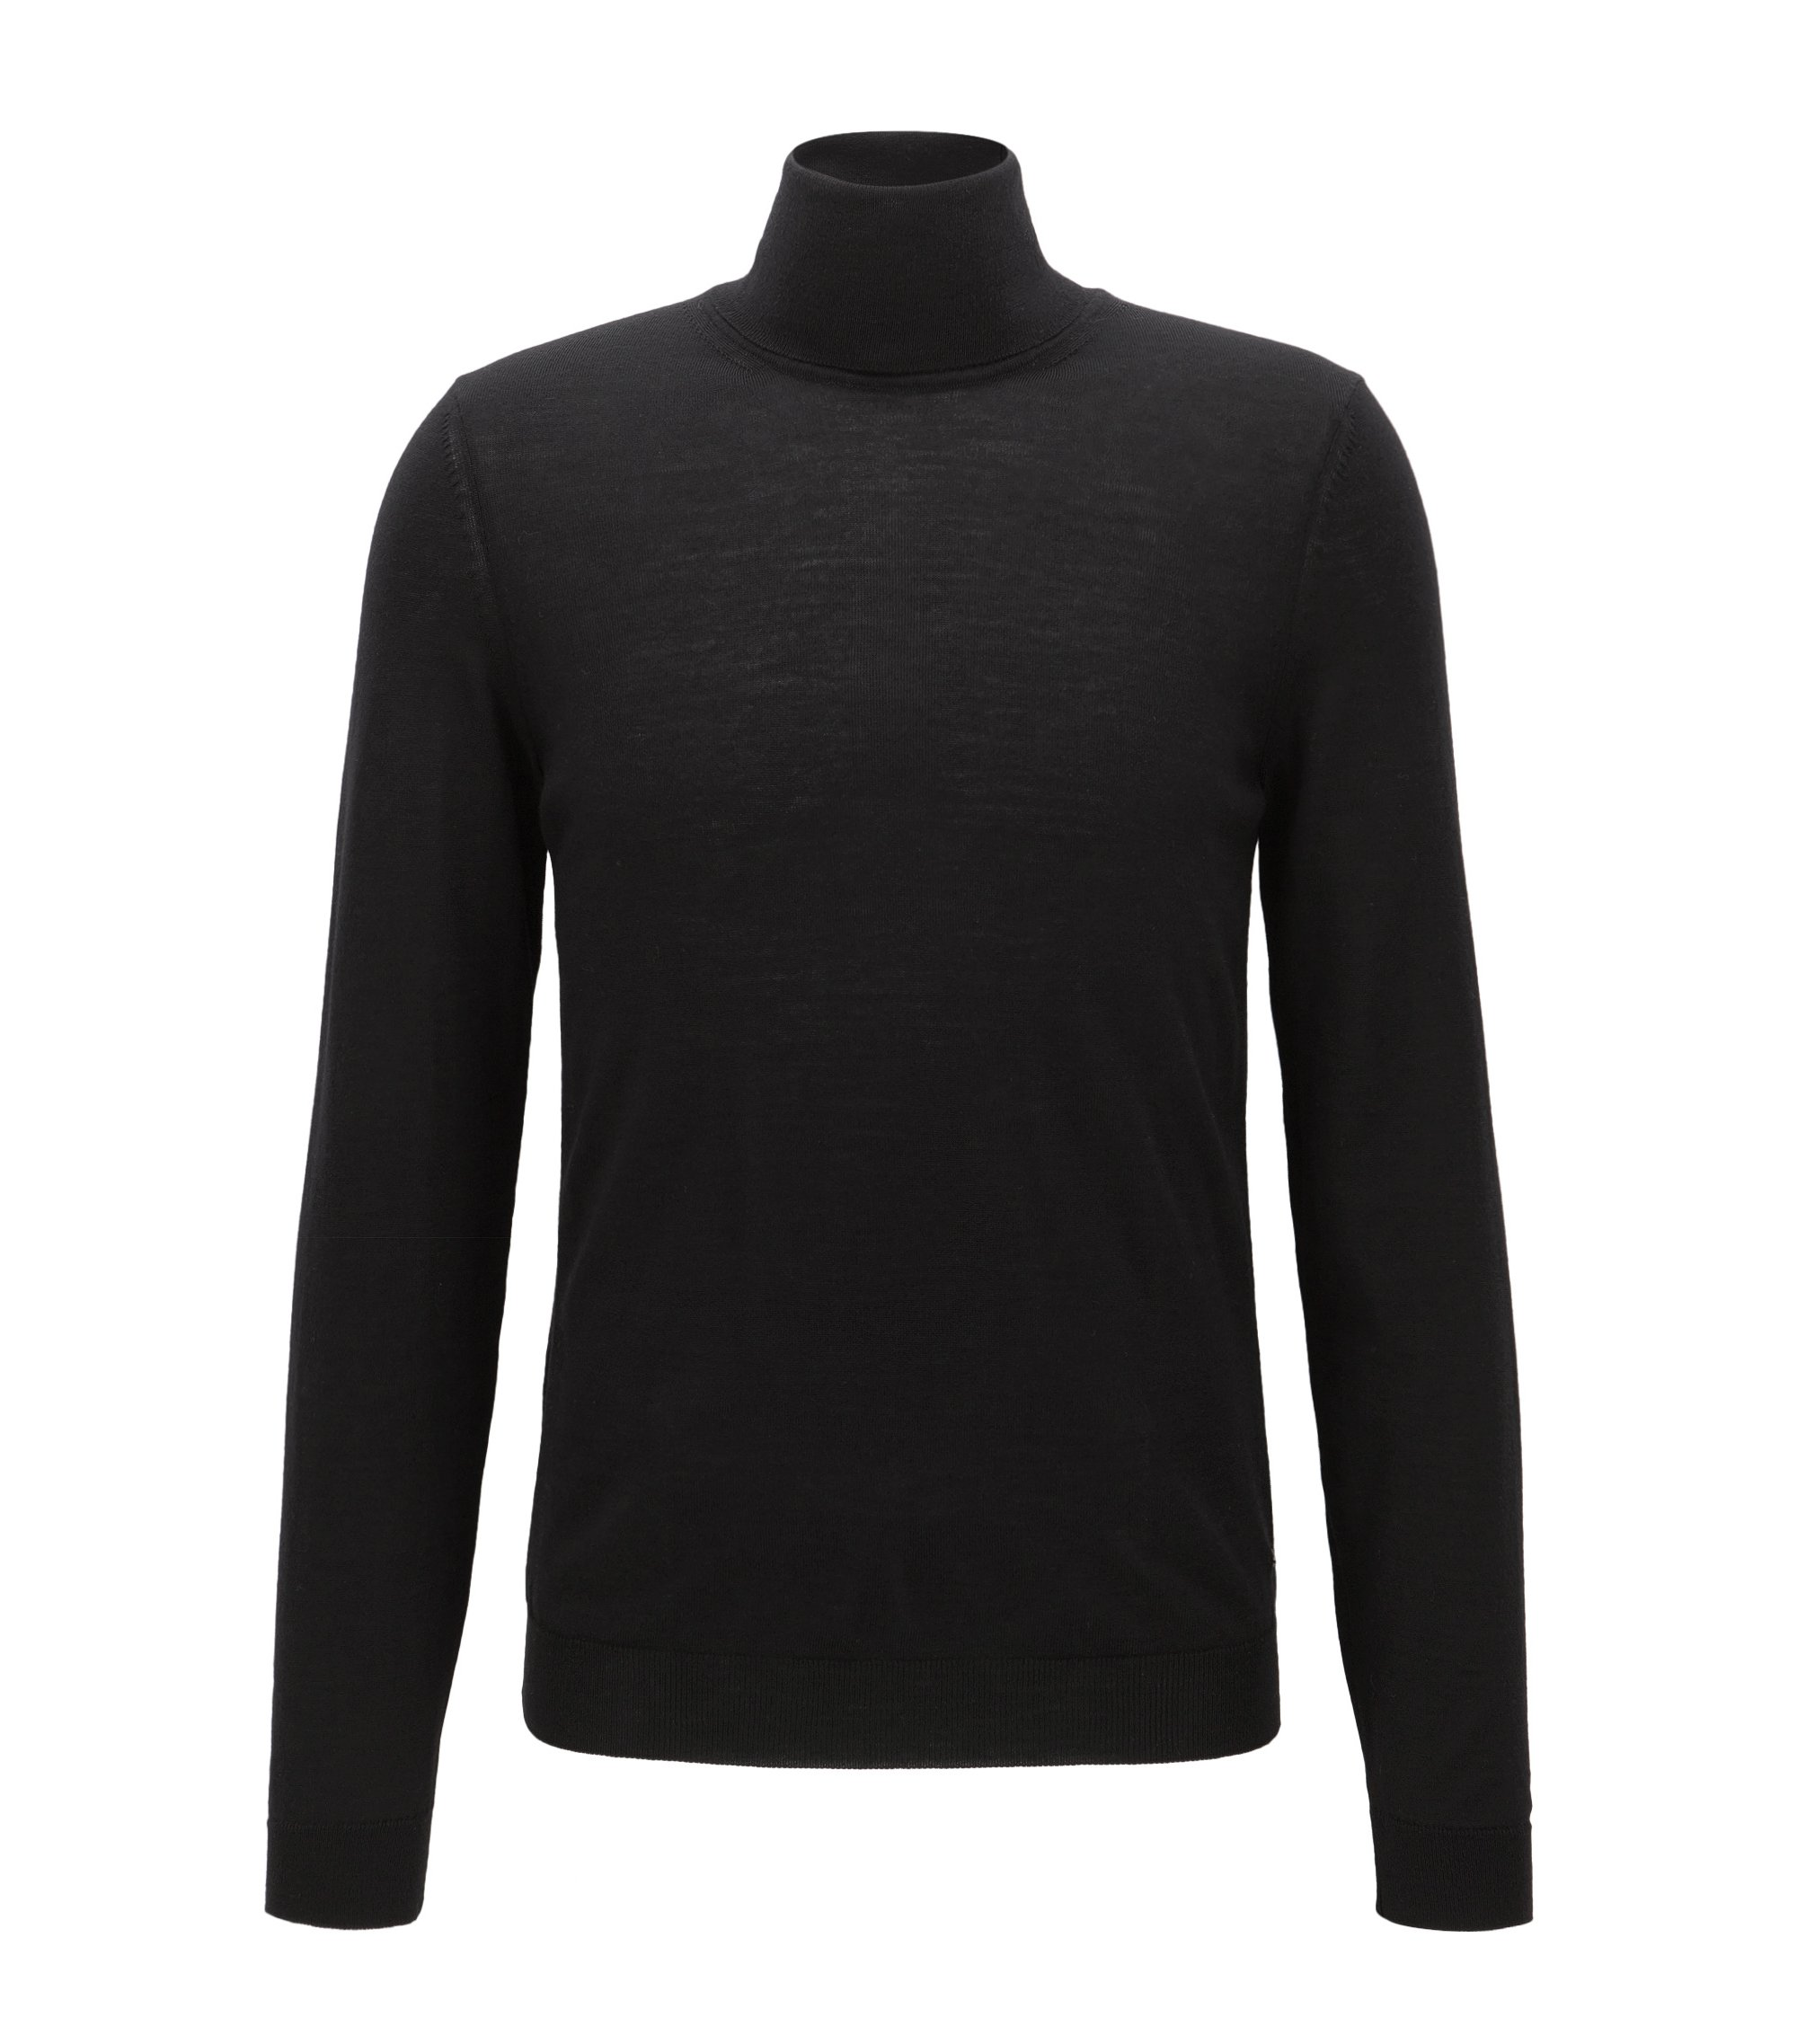 Merino Wool Turtleneck Sweater | Musso N, Black